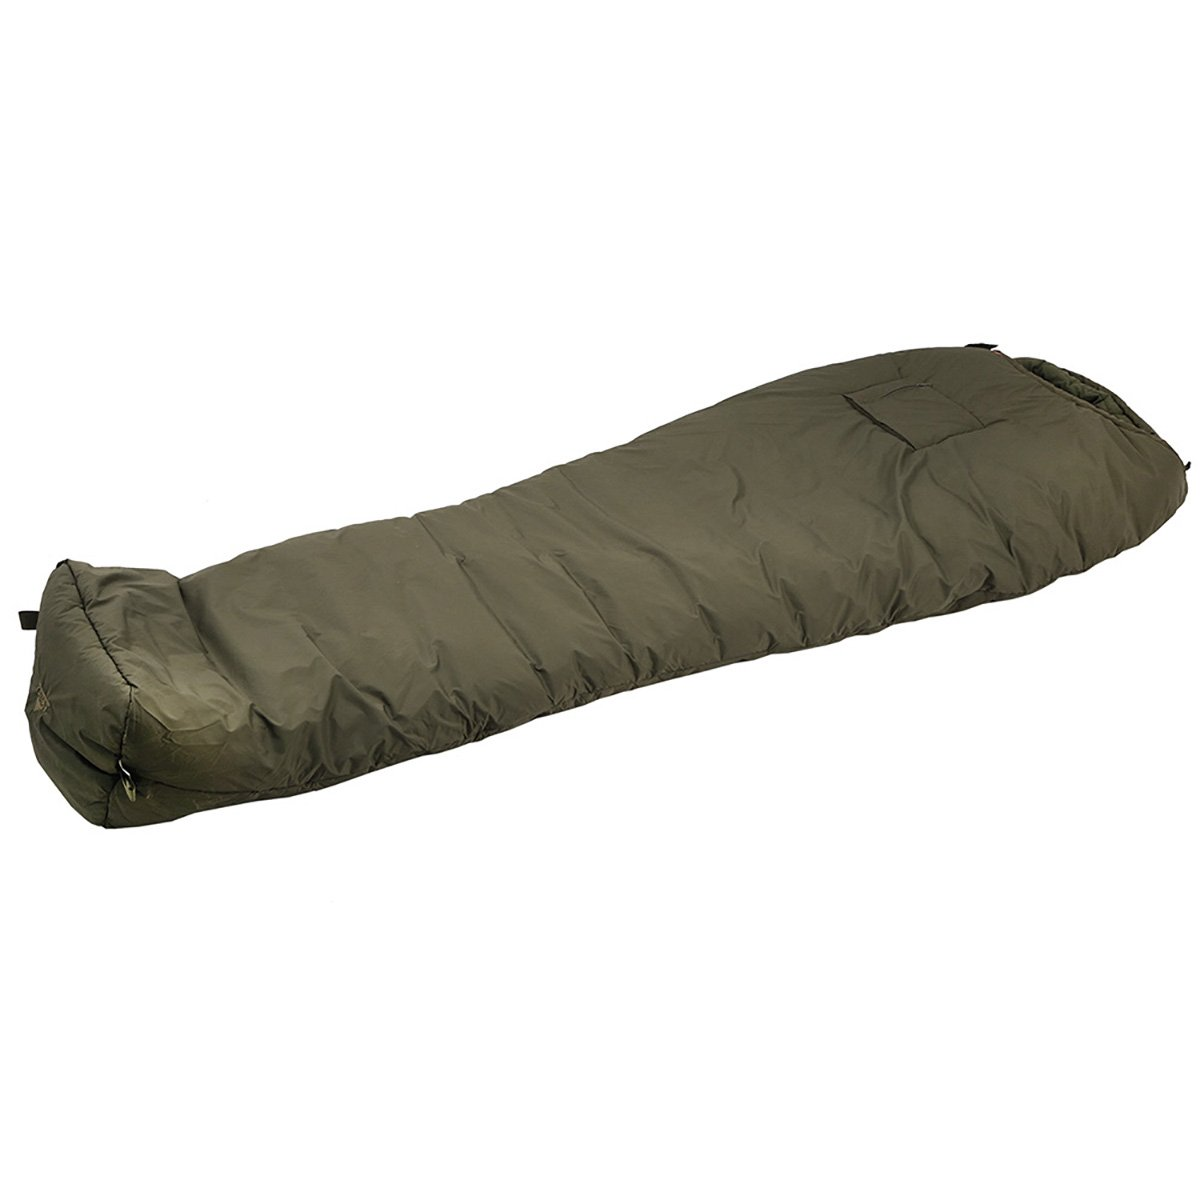 Carinthia Brenta 185 M Sleeping Bag Right Zip Olive